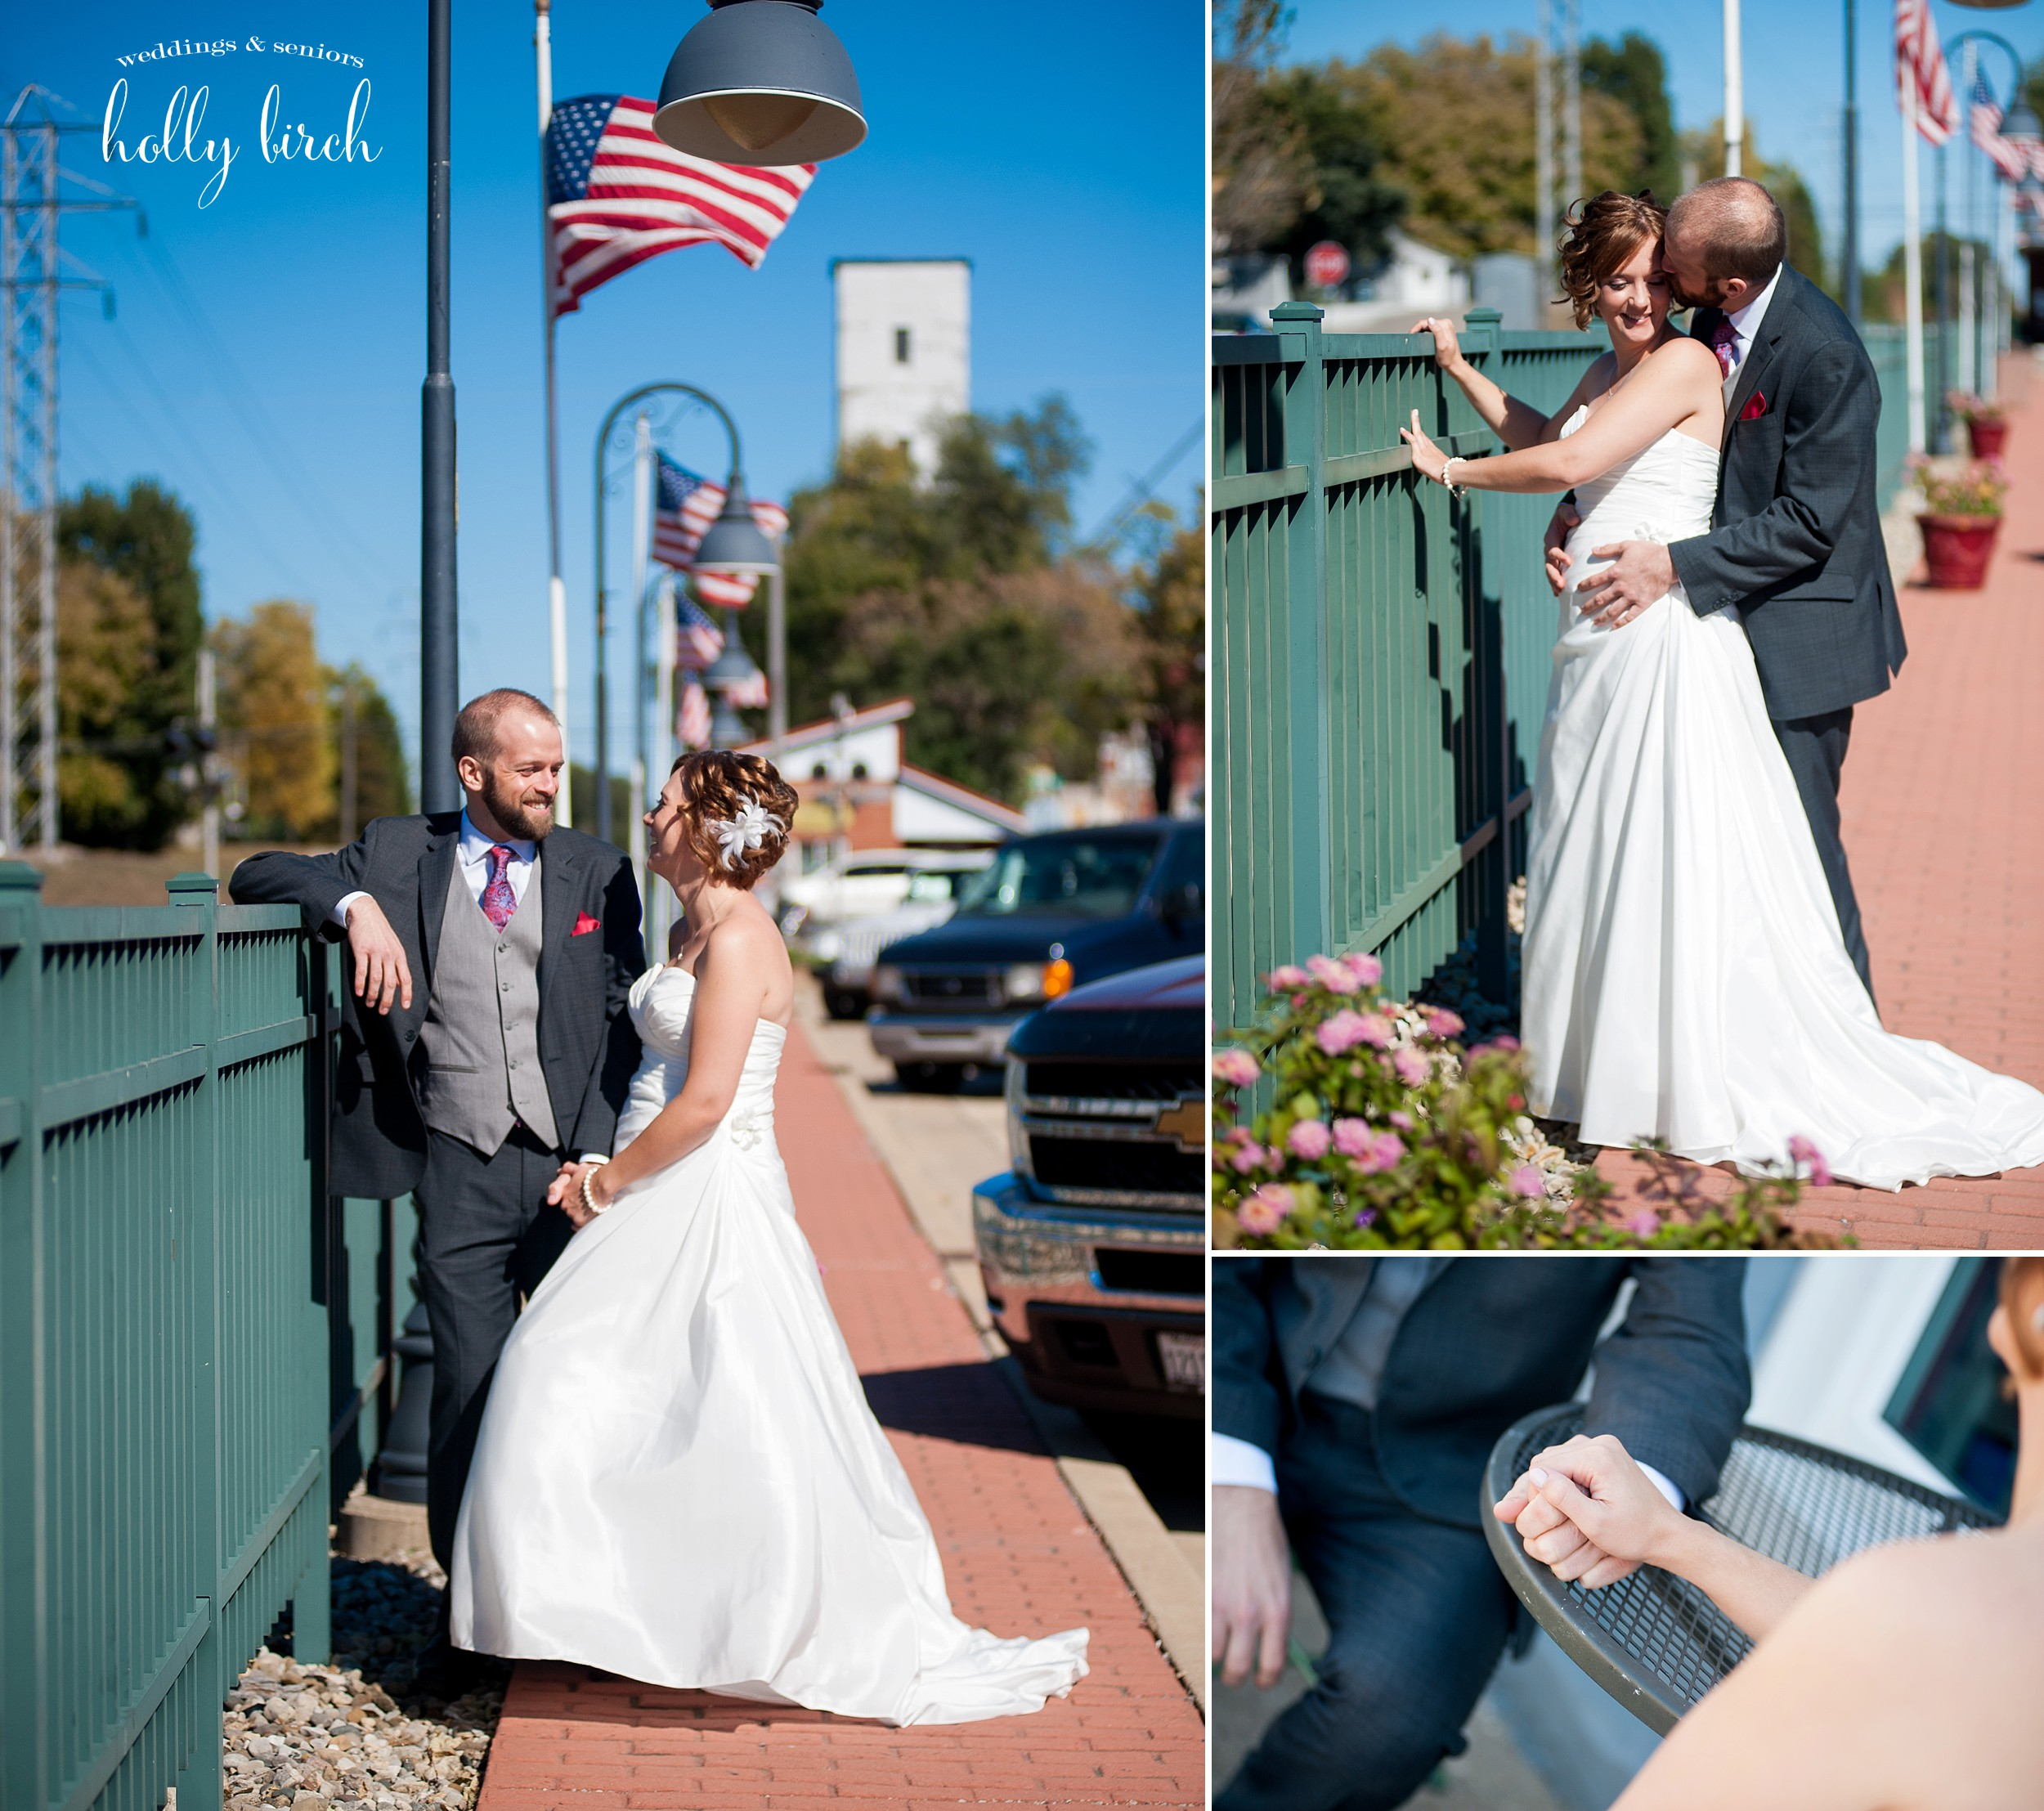 Americana wedding photo with flag